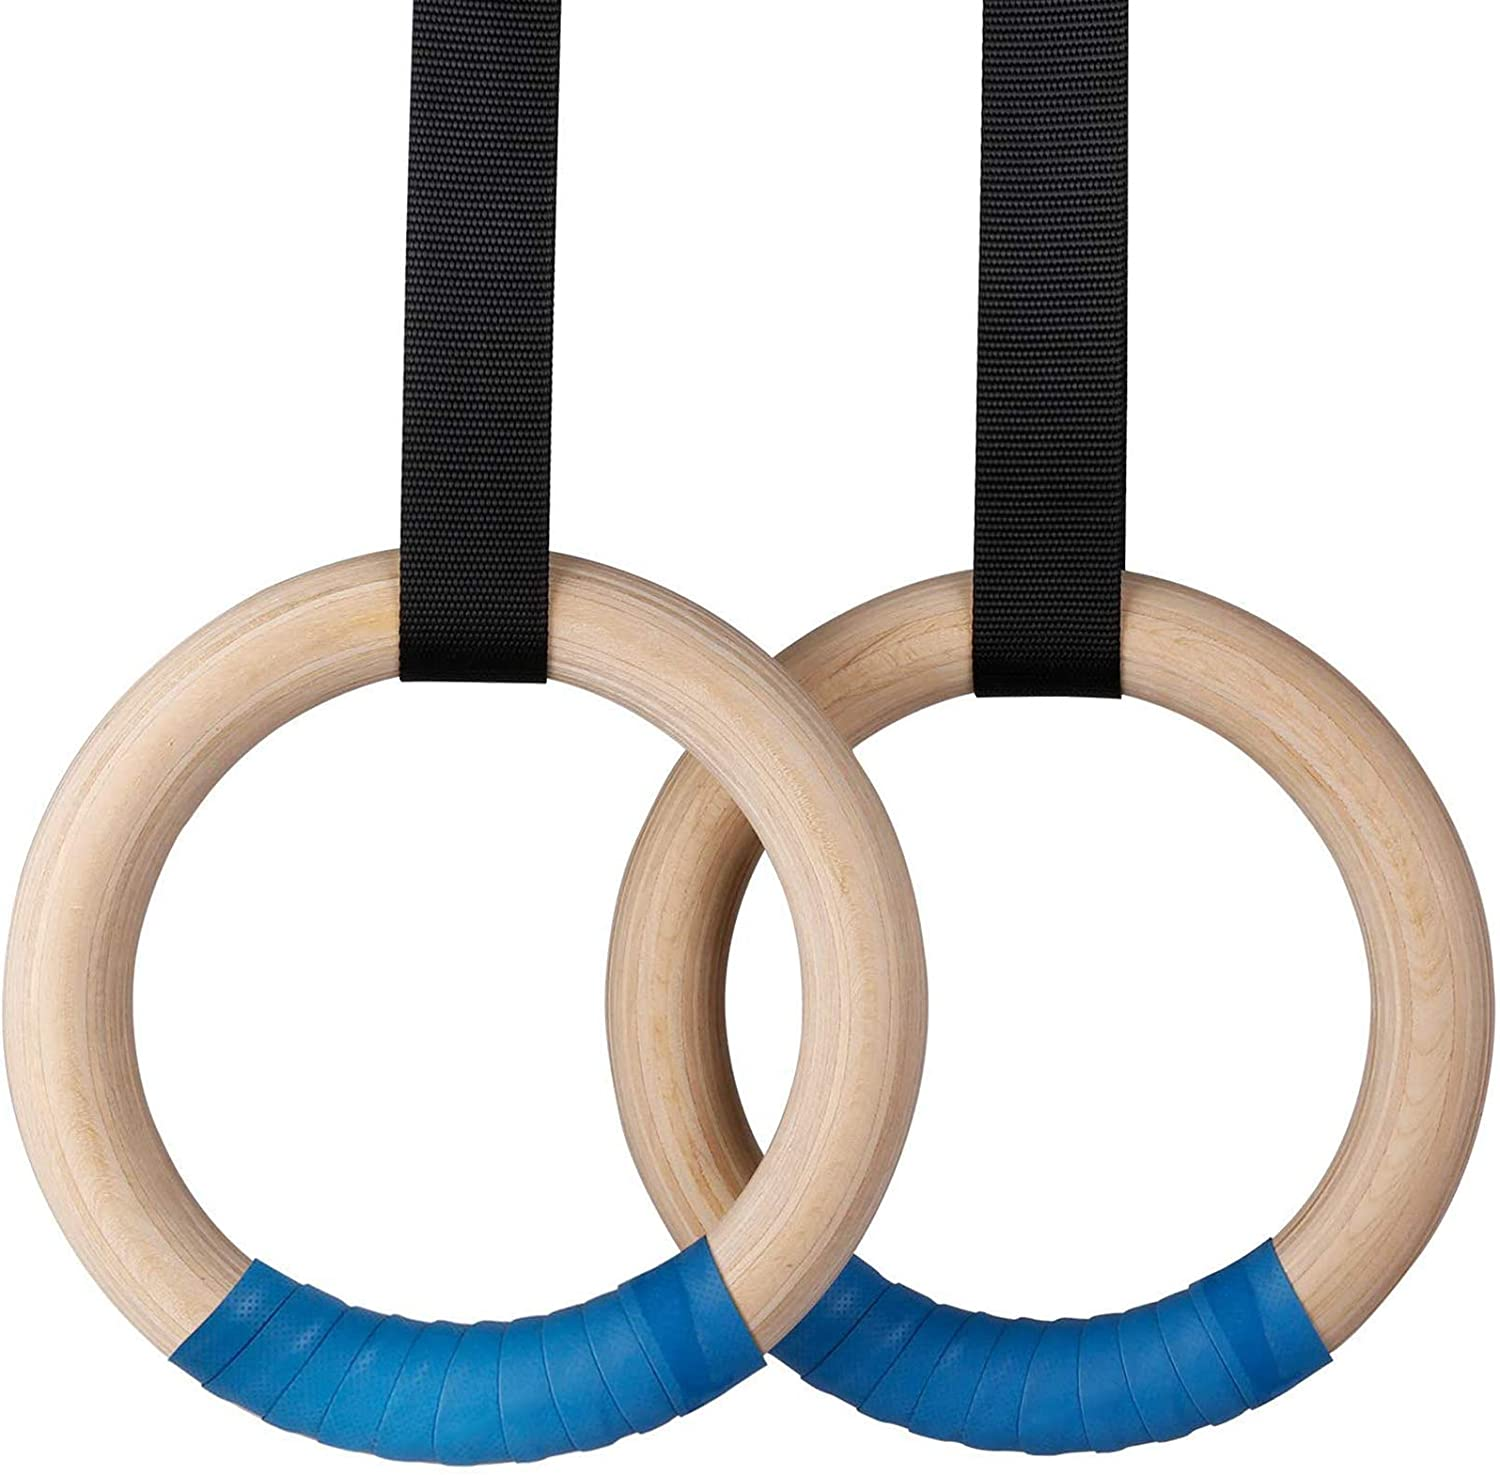 INTEY Wood Gymnastic Rings 1500lbs, Industrial-Grade Buckle, Adjustable Straps, 1.25 Inch Fitness Rings for Home Full Body Workout and Outdoor Strength Training.